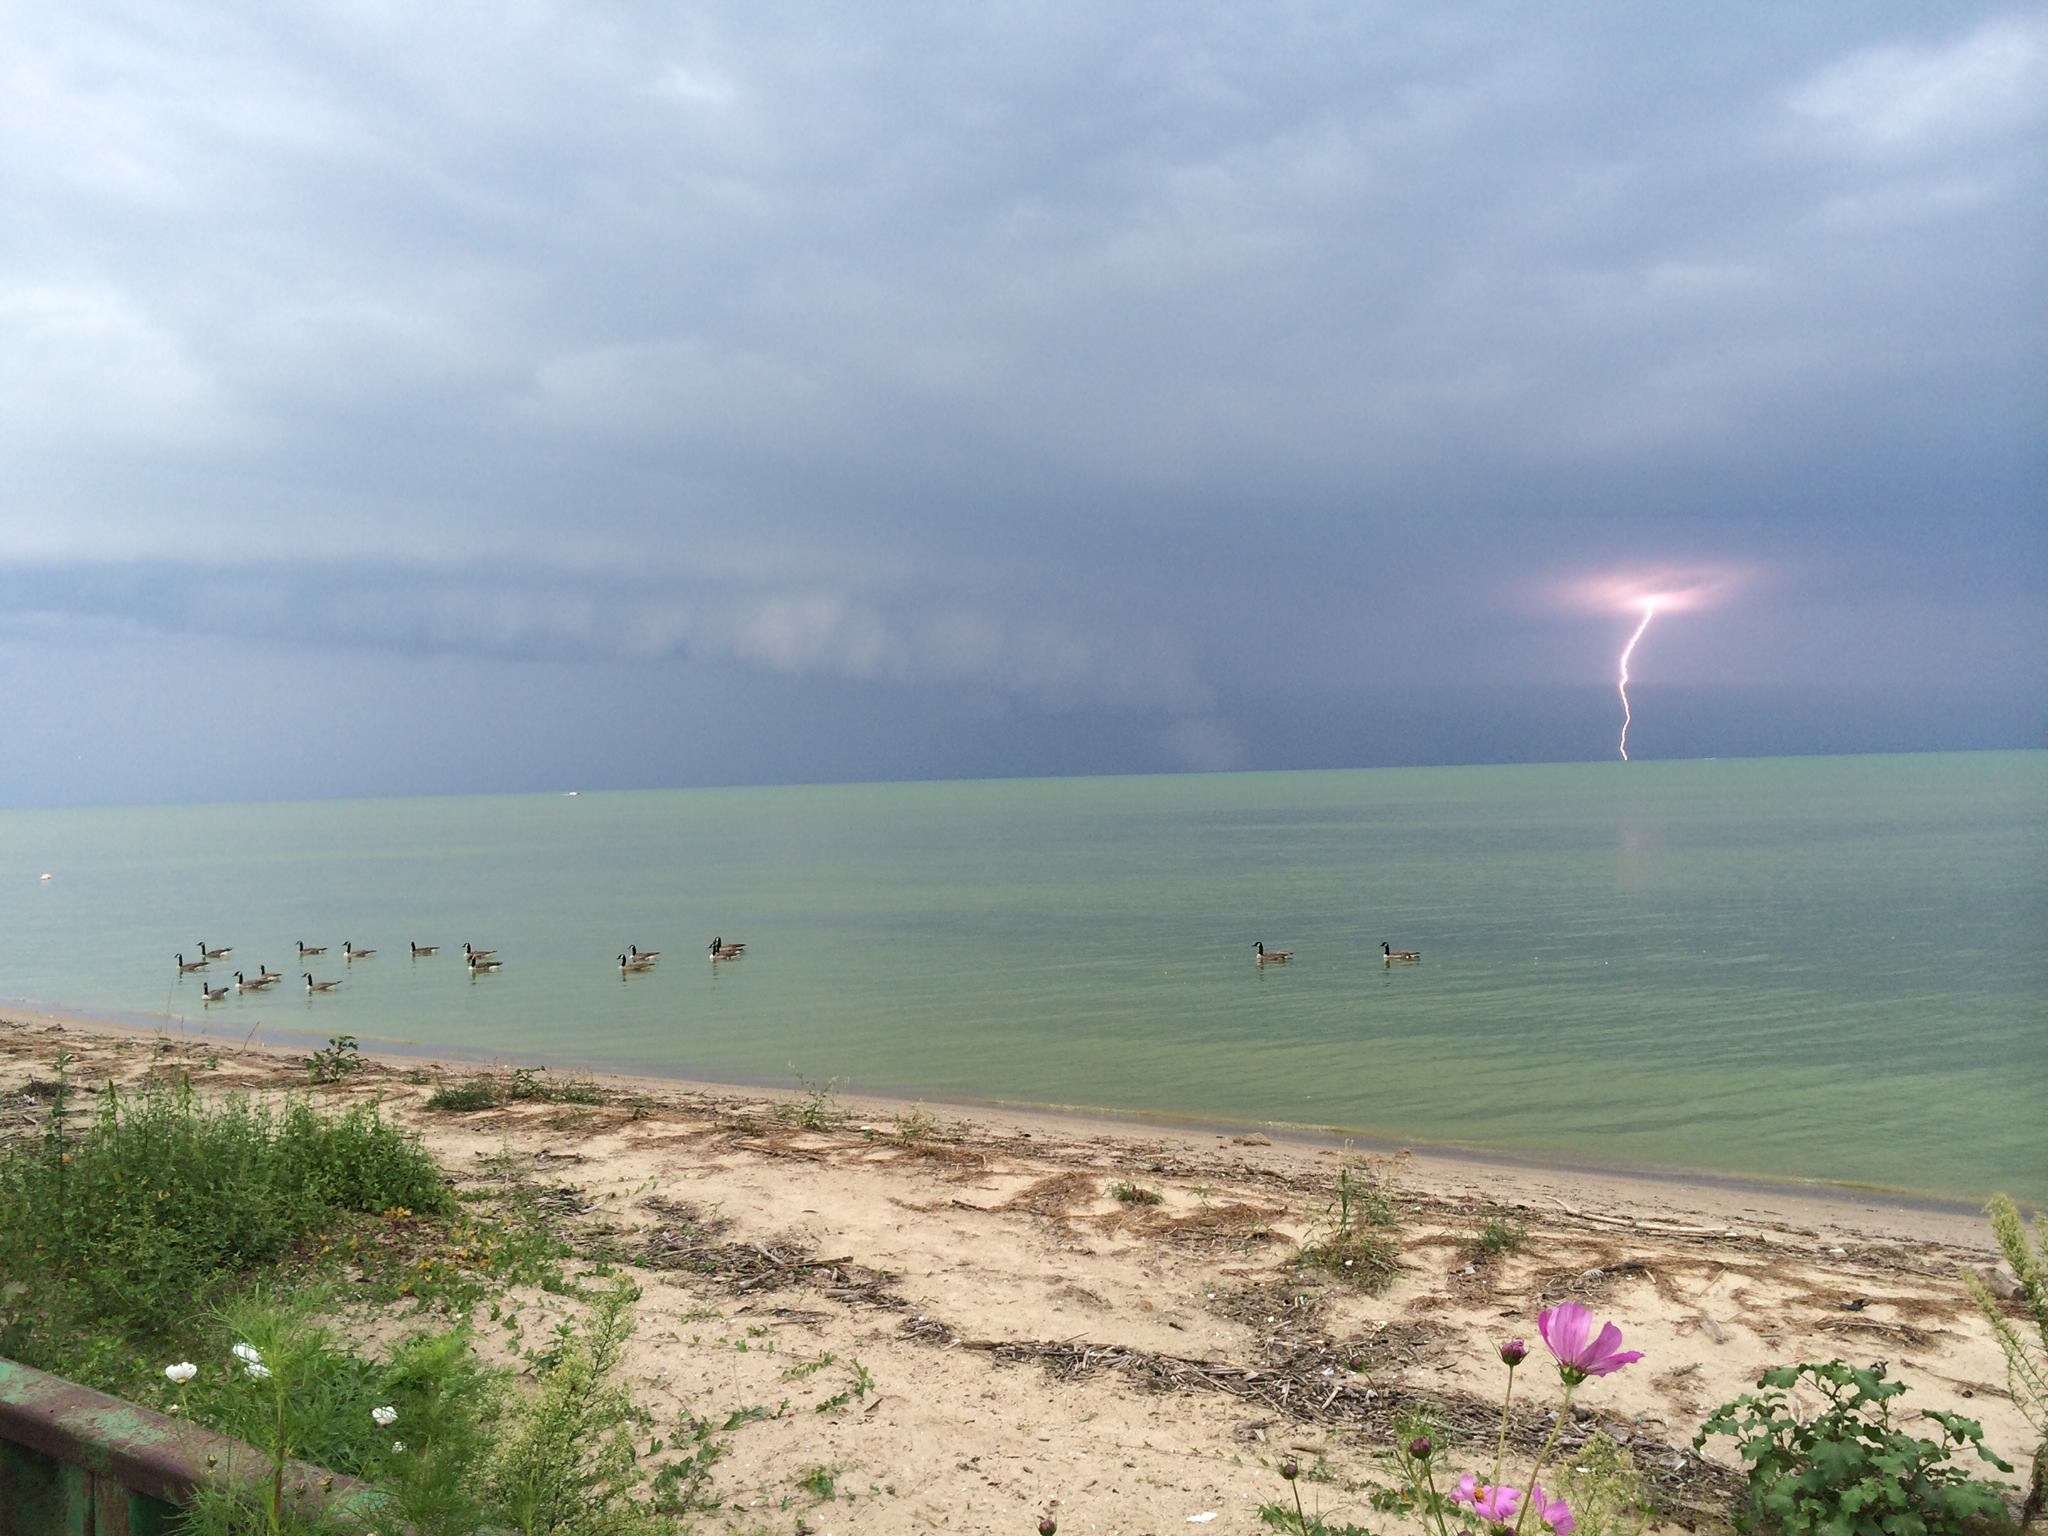 A lightning strike is seen in this photo taken in Belle River on Lake St. Clair on August 26, 2014. (Photo courtesy Adam Hooper)